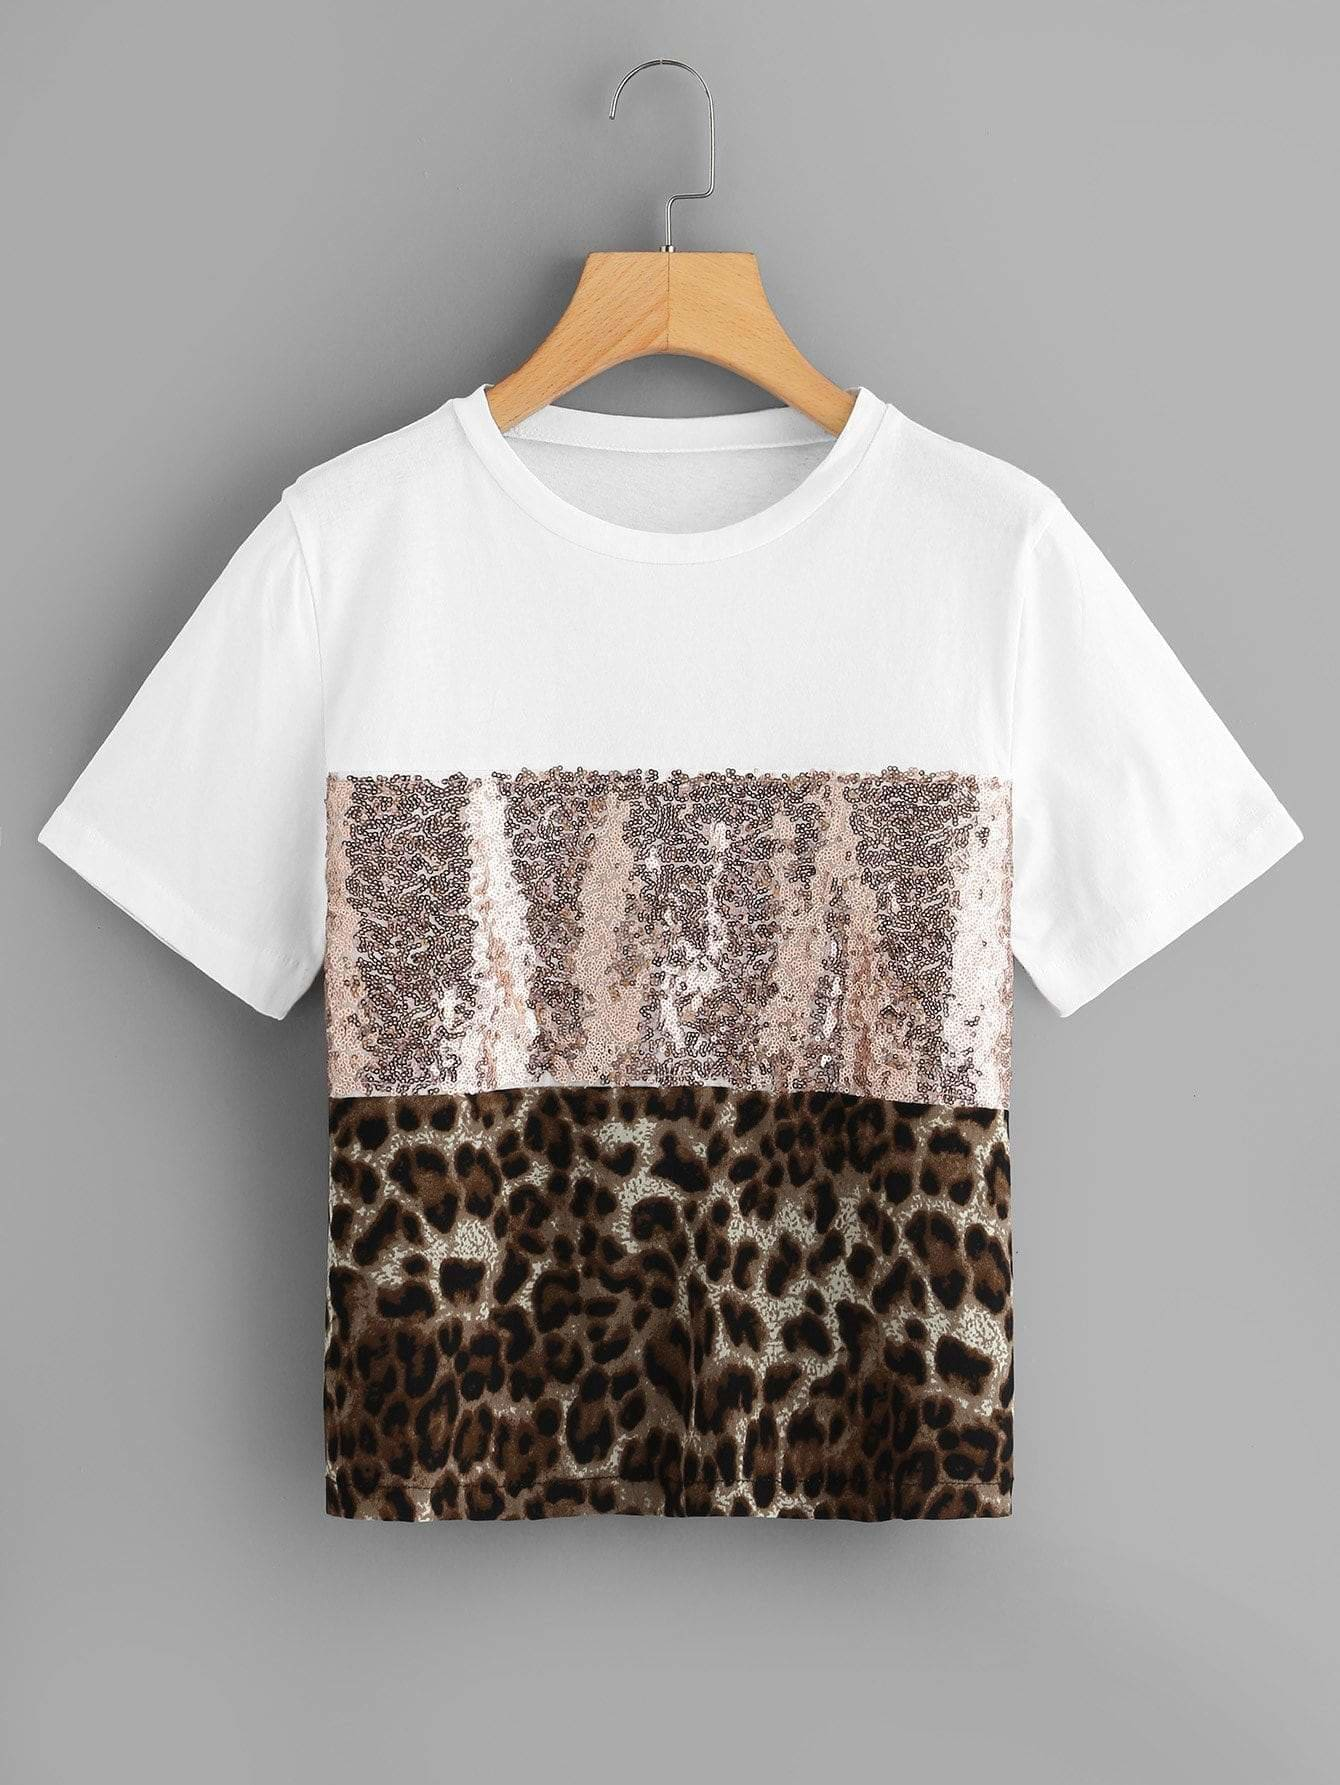 Leopard & Sequin Panel Tee - S / Multicolor - Shirts